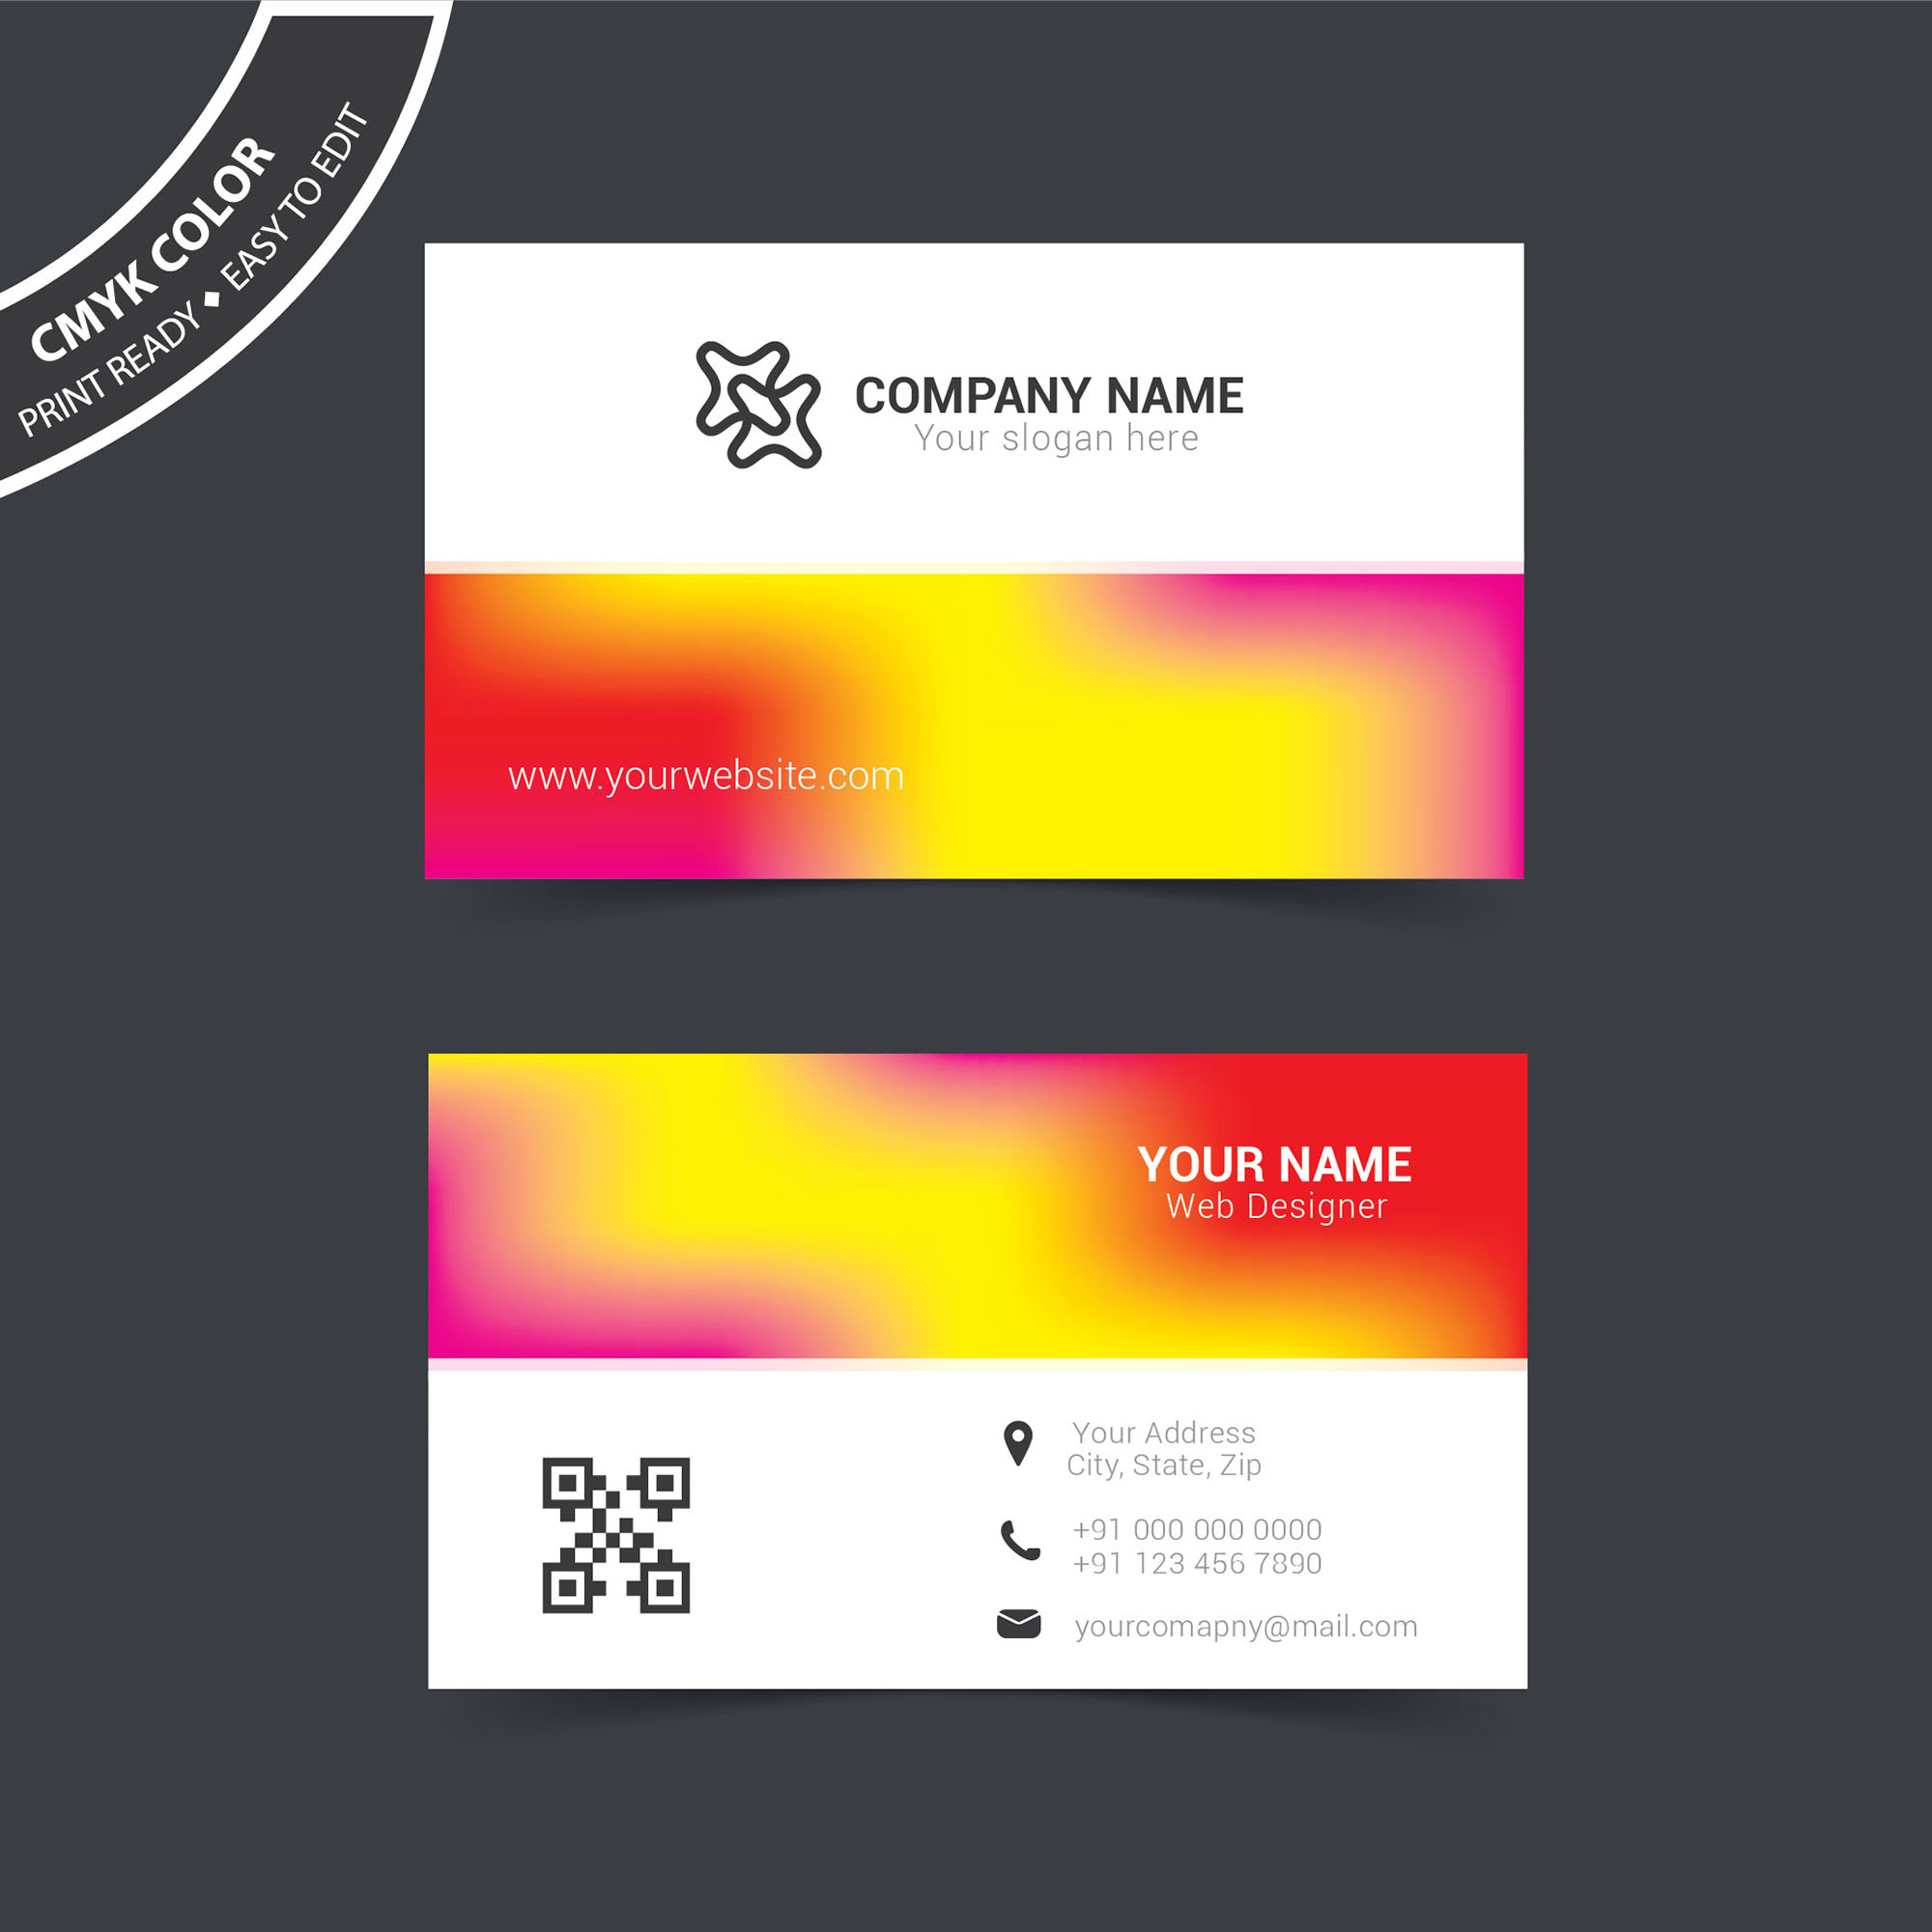 Colorful Business Card Template Free Download Wisxicom - Business cards templates free download